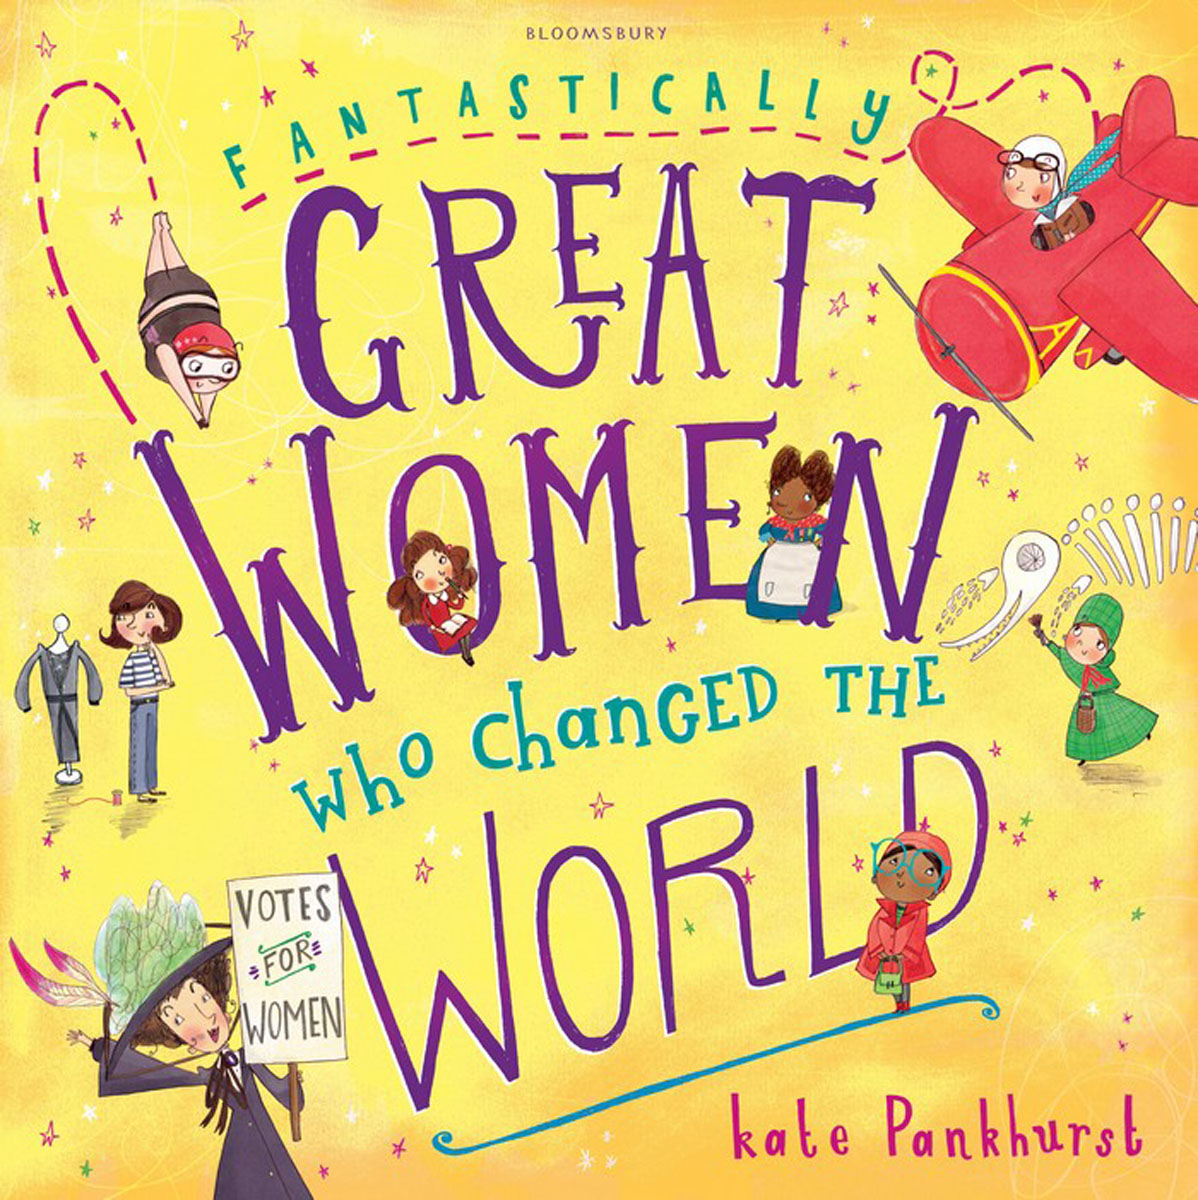 Fantastically Great Women Who Changed The World bad girls throughout history 100 remarkable women who changed the world